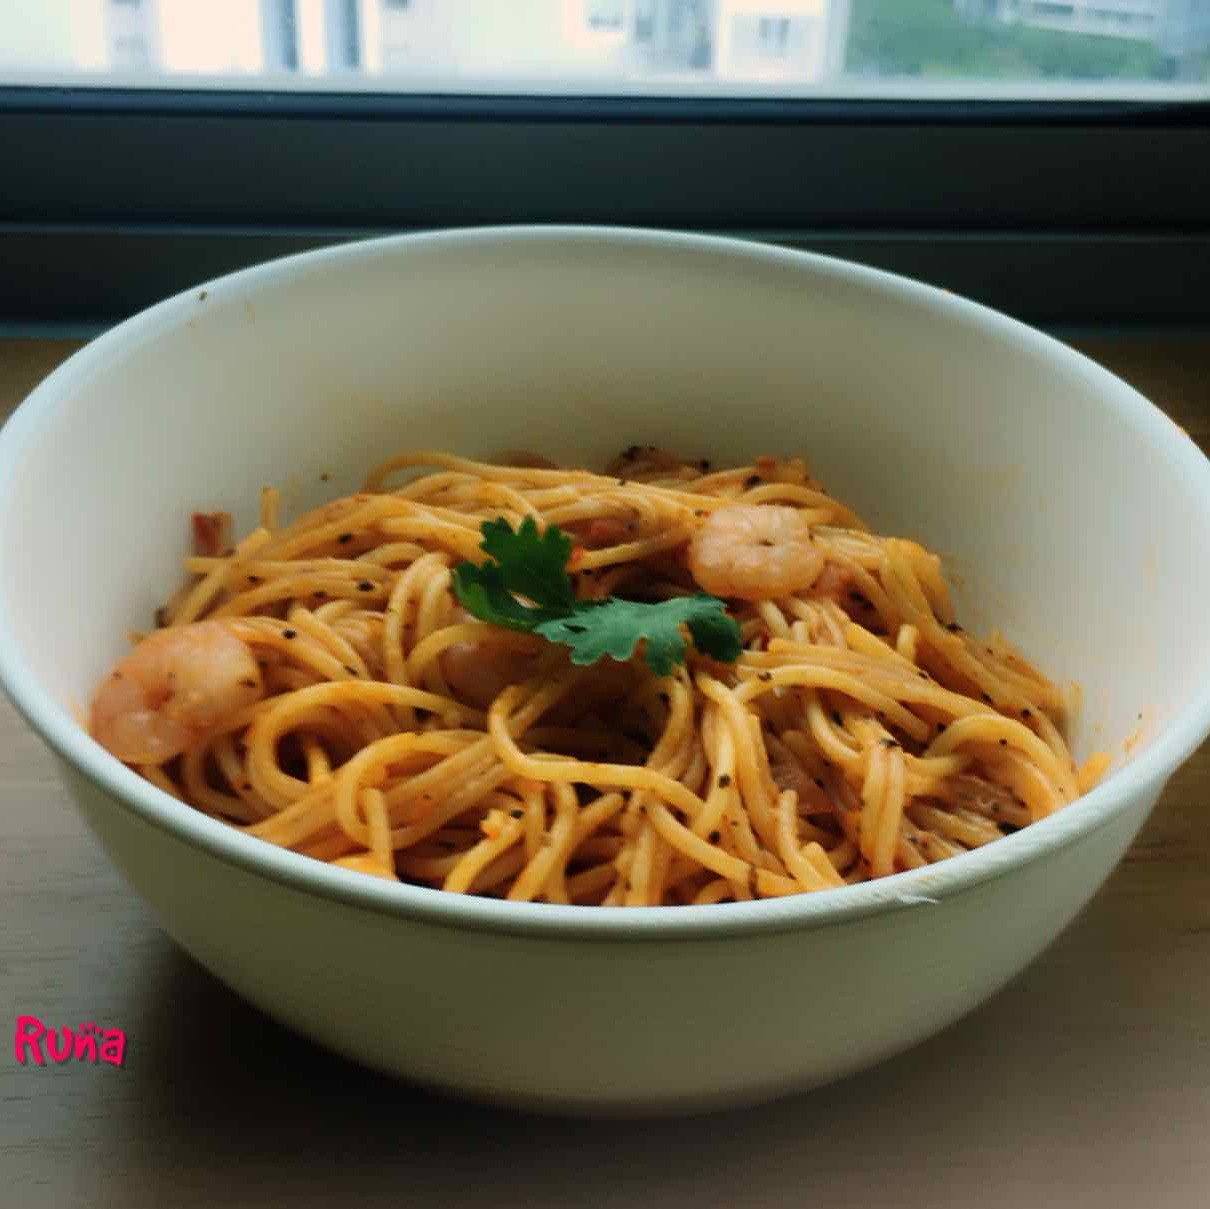 How to make Spaghetti Bolognese With Sauteed Garlic and Shrimps